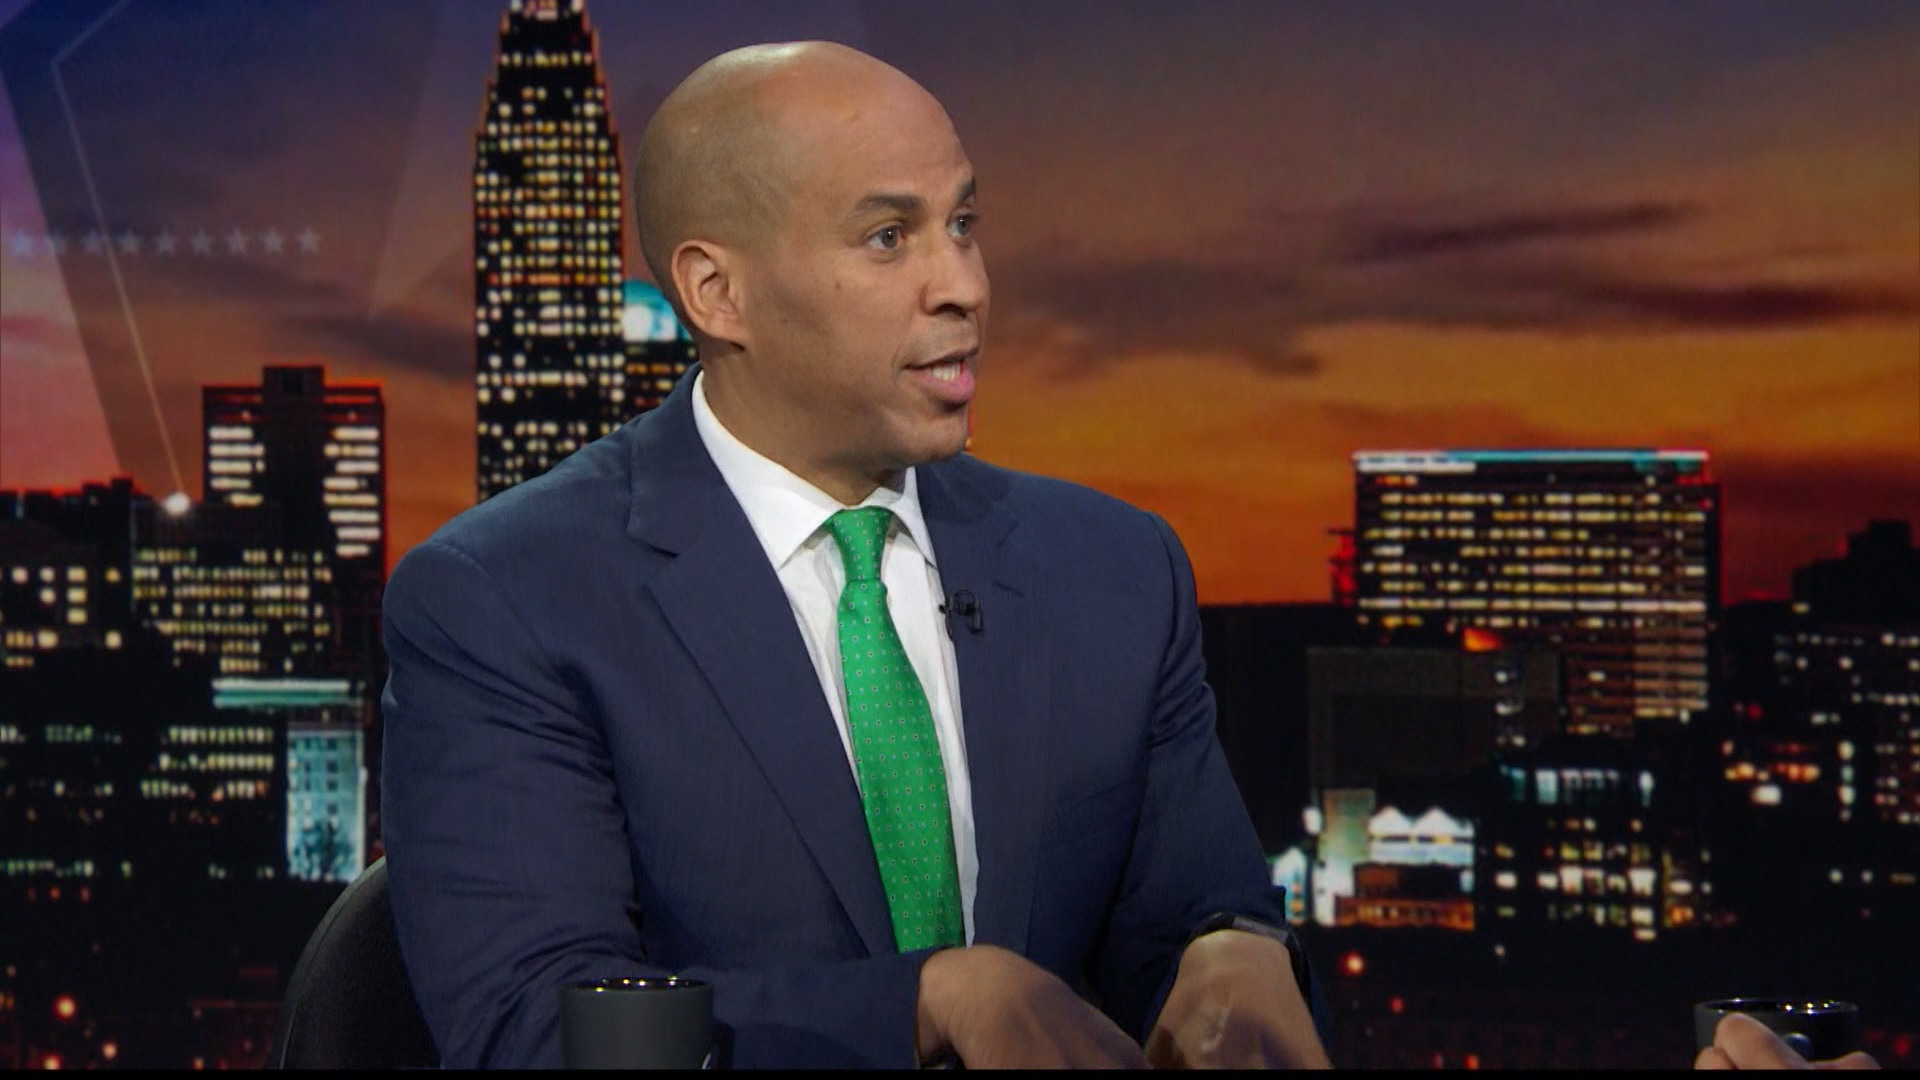 Cory Booker - Achieving Equal Justice Under the Law